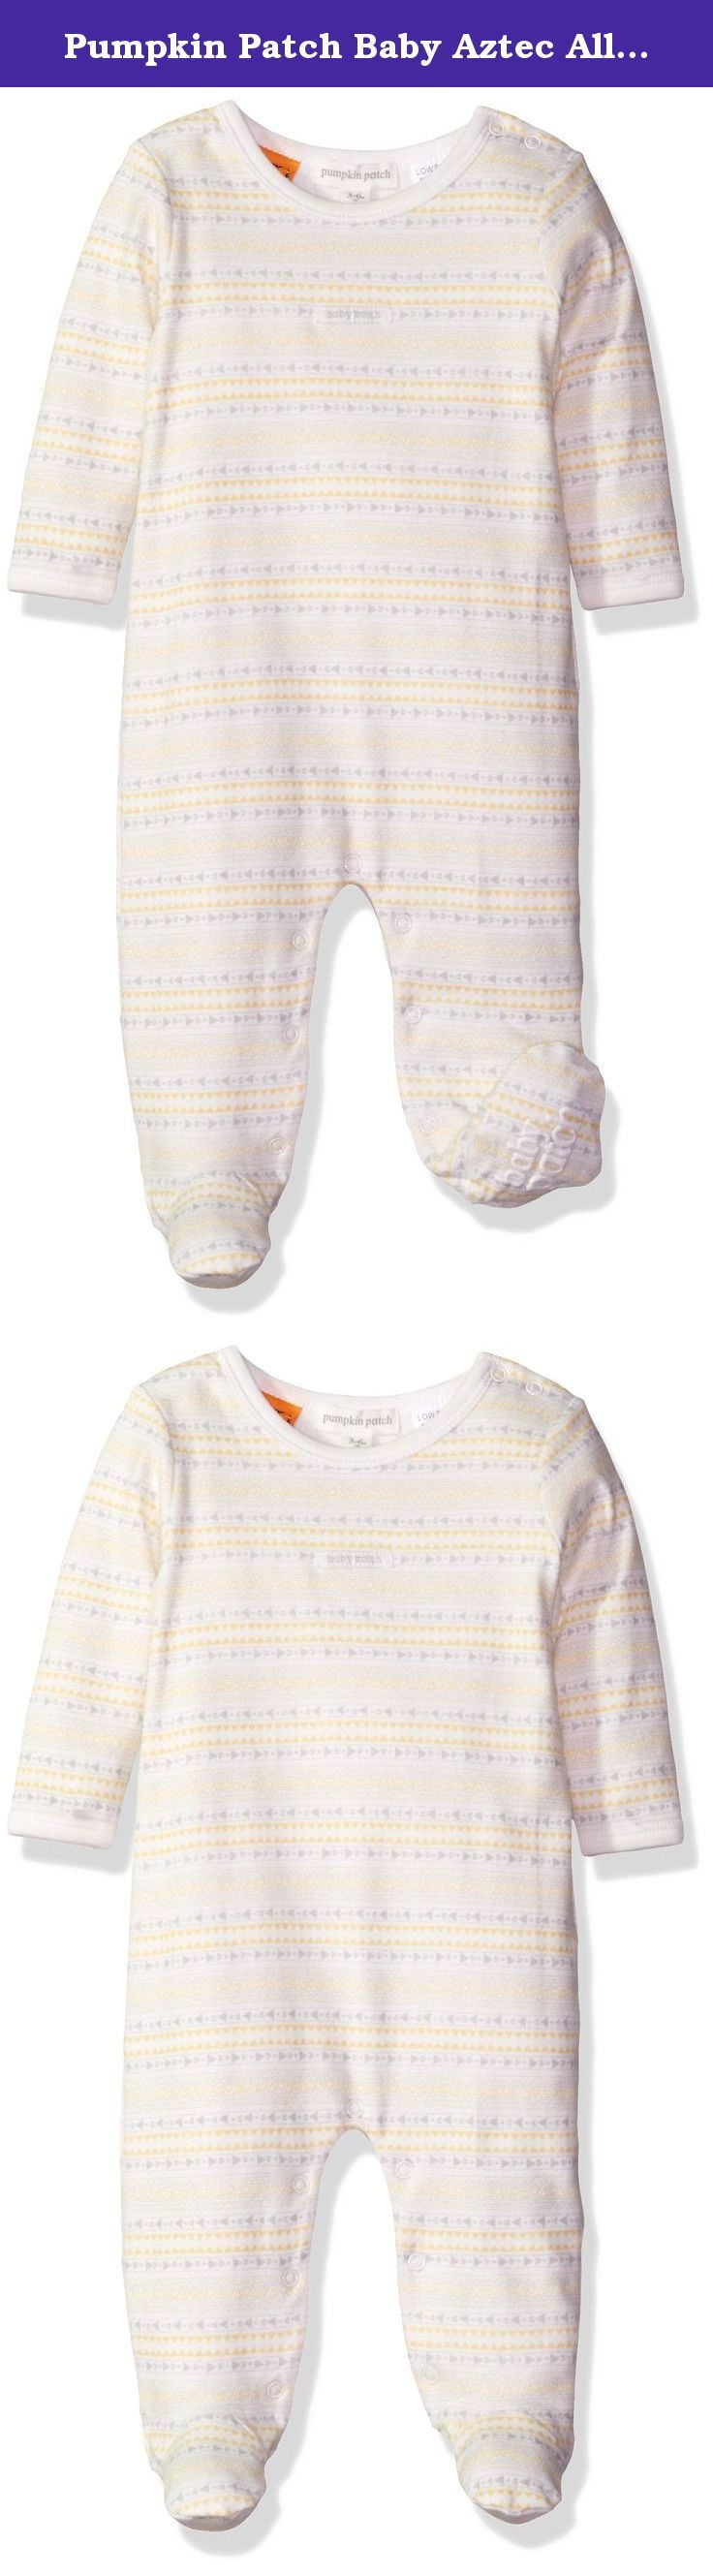 Pumpkin Patch Baby Aztec All in One, French Vanilla, 0-3m. Cute Aztec allover print. Featuring built in feet to keep their little toes snug and warm. Made in the softest cotton this bodysuit has a crossover opening meaning baby can lie comfortably during change time without having anything pulled over his/her head.